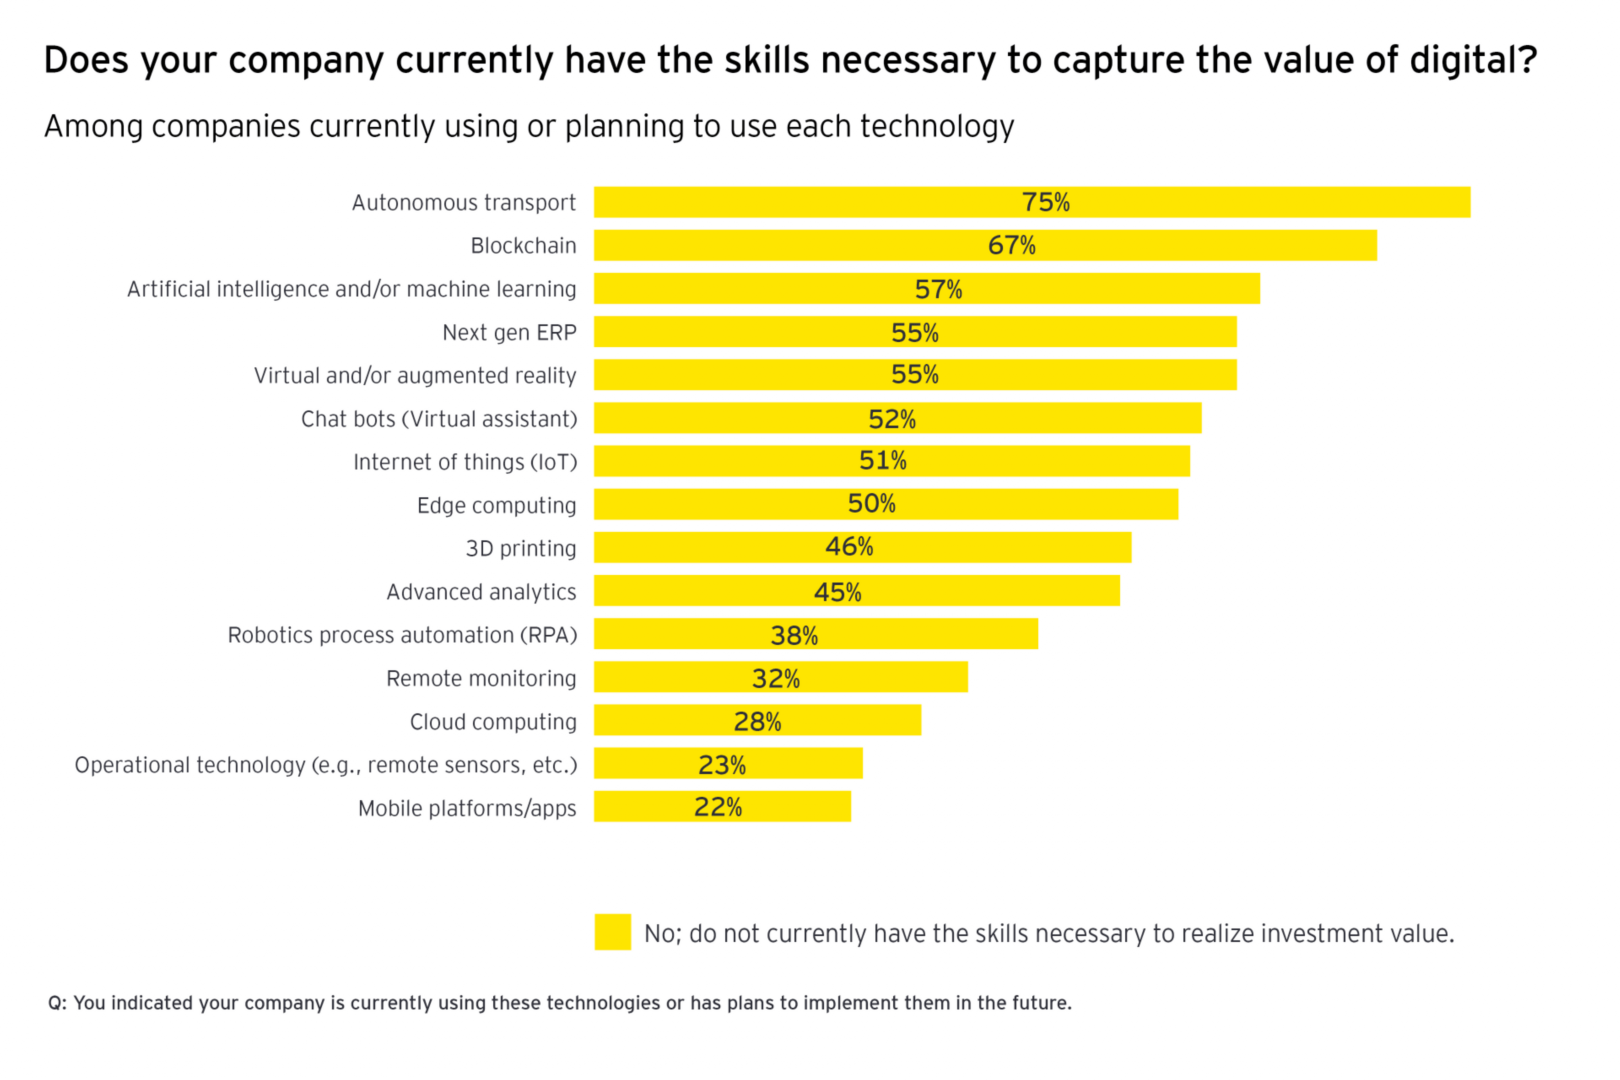 Skills to capture the value of digital